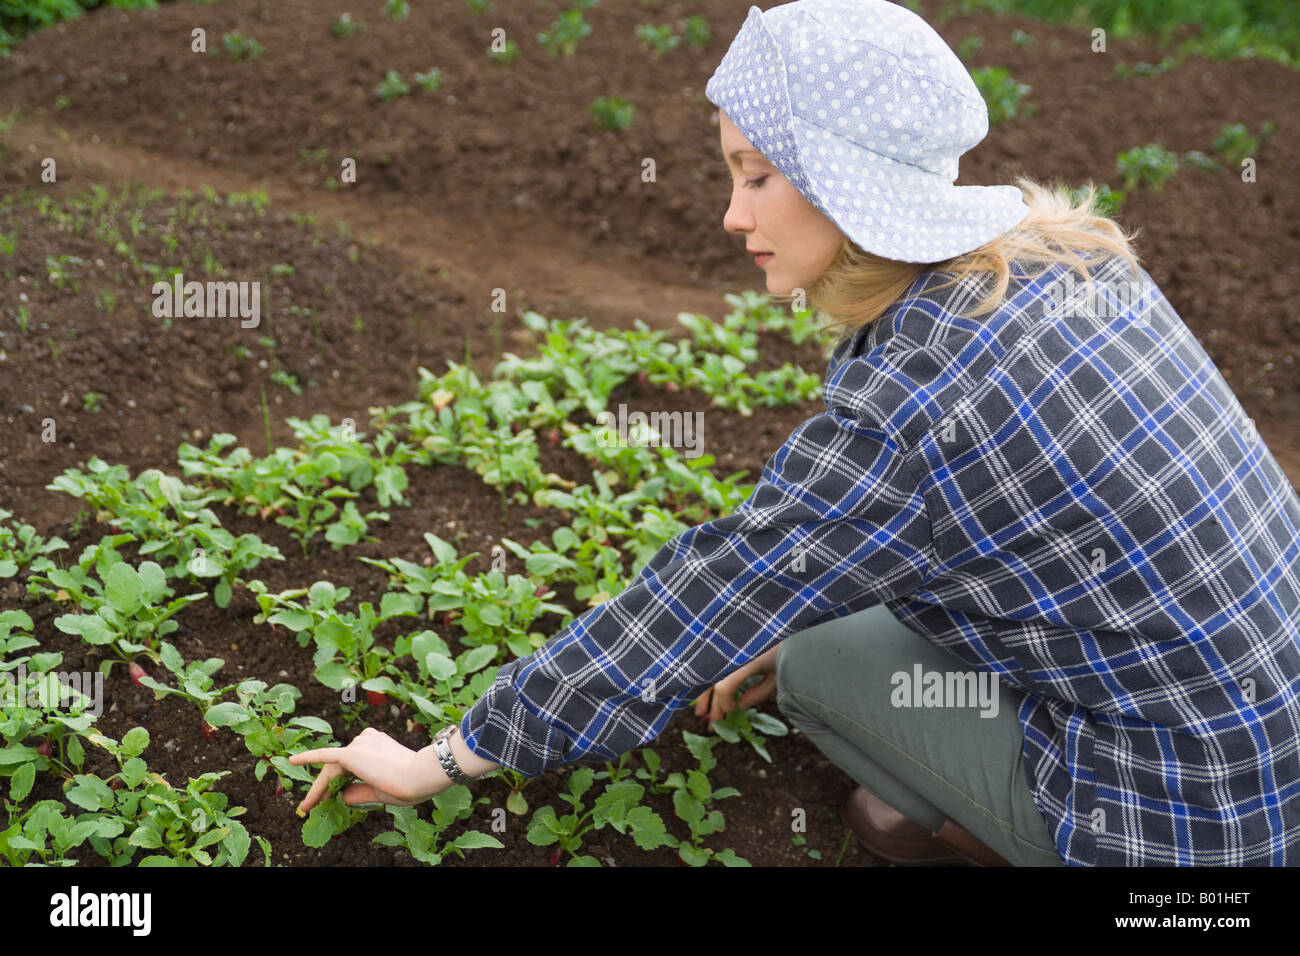 Young woman works in a garden. - Stock Image